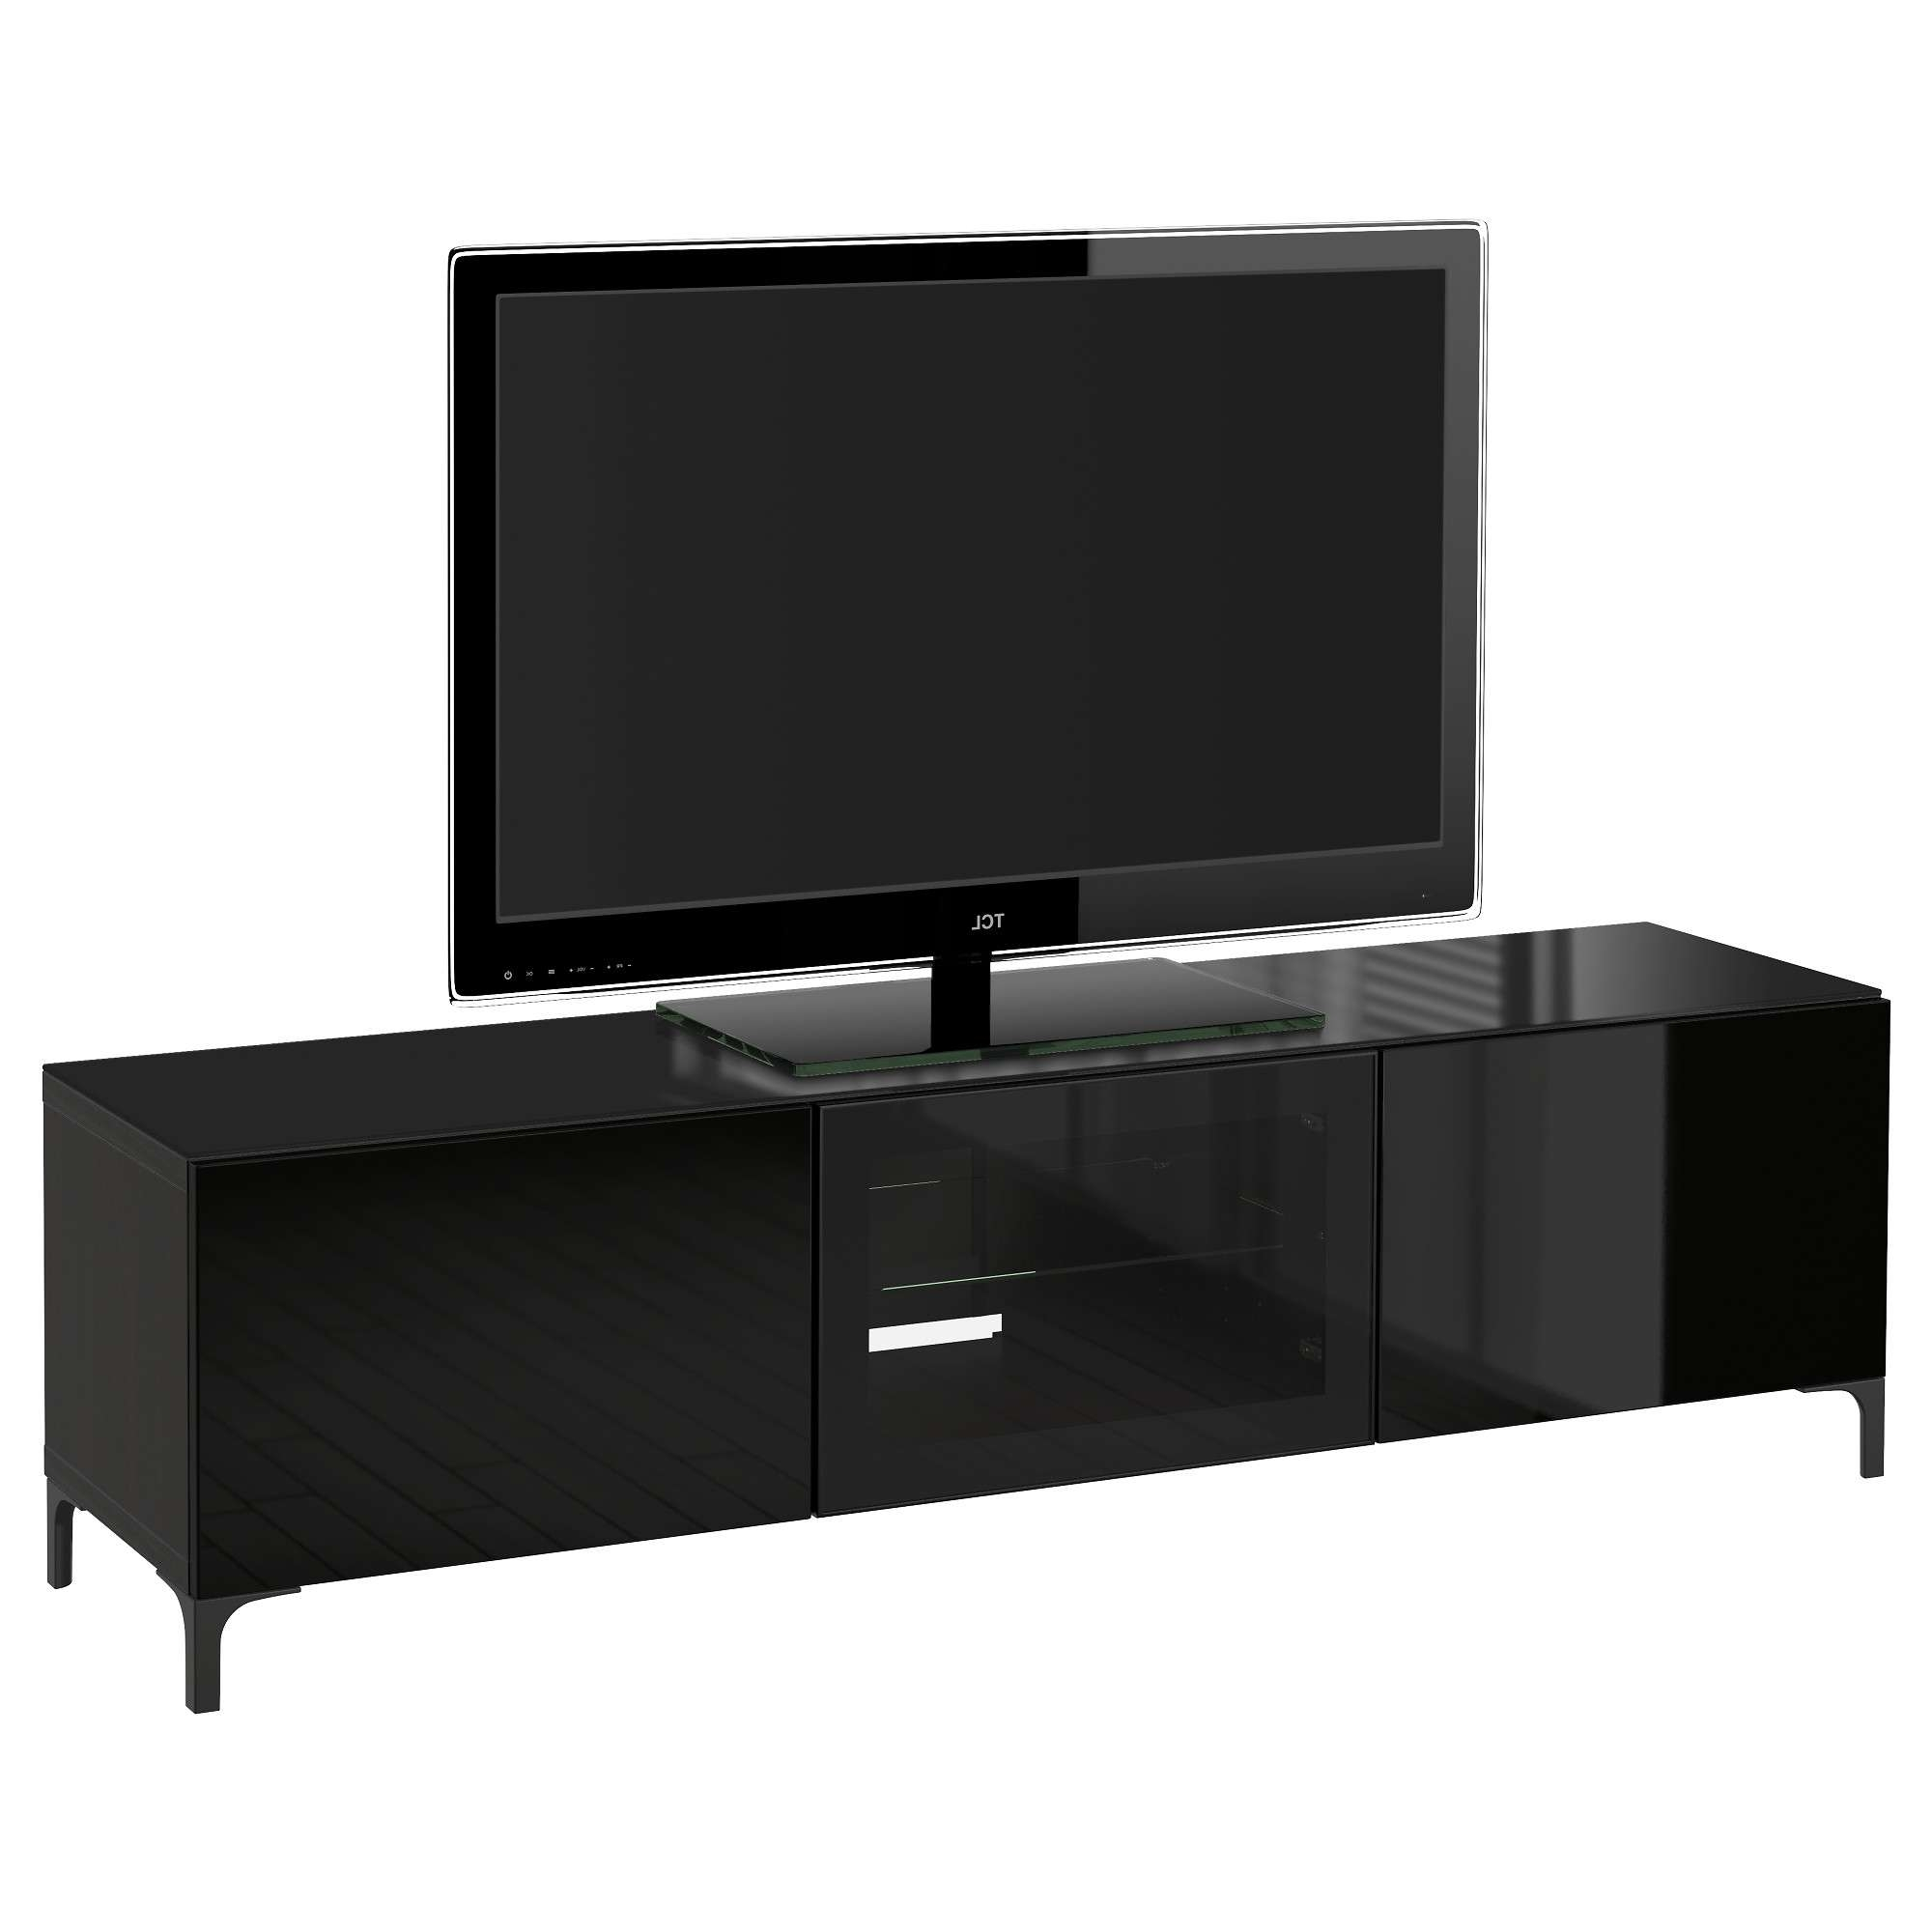 Tv Stands & Entertainment Centers – Ikea With Black Tv Cabinets With Doors (View 7 of 20)